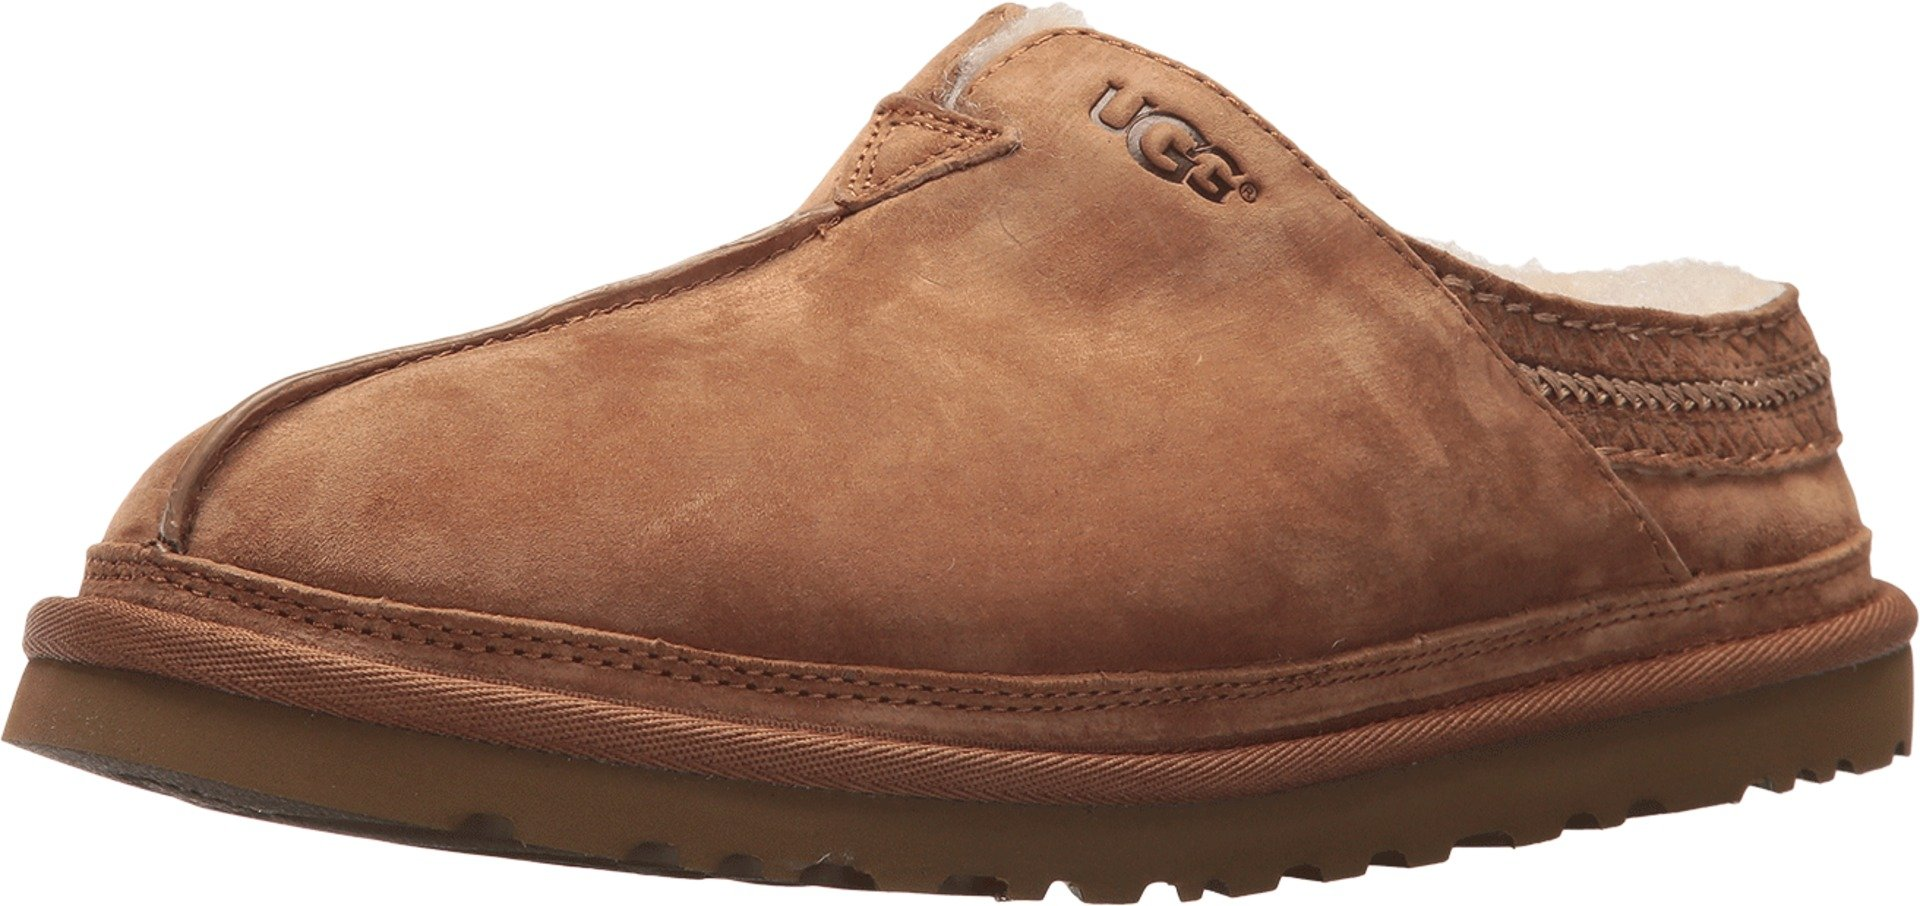 ugg men's tasman sale